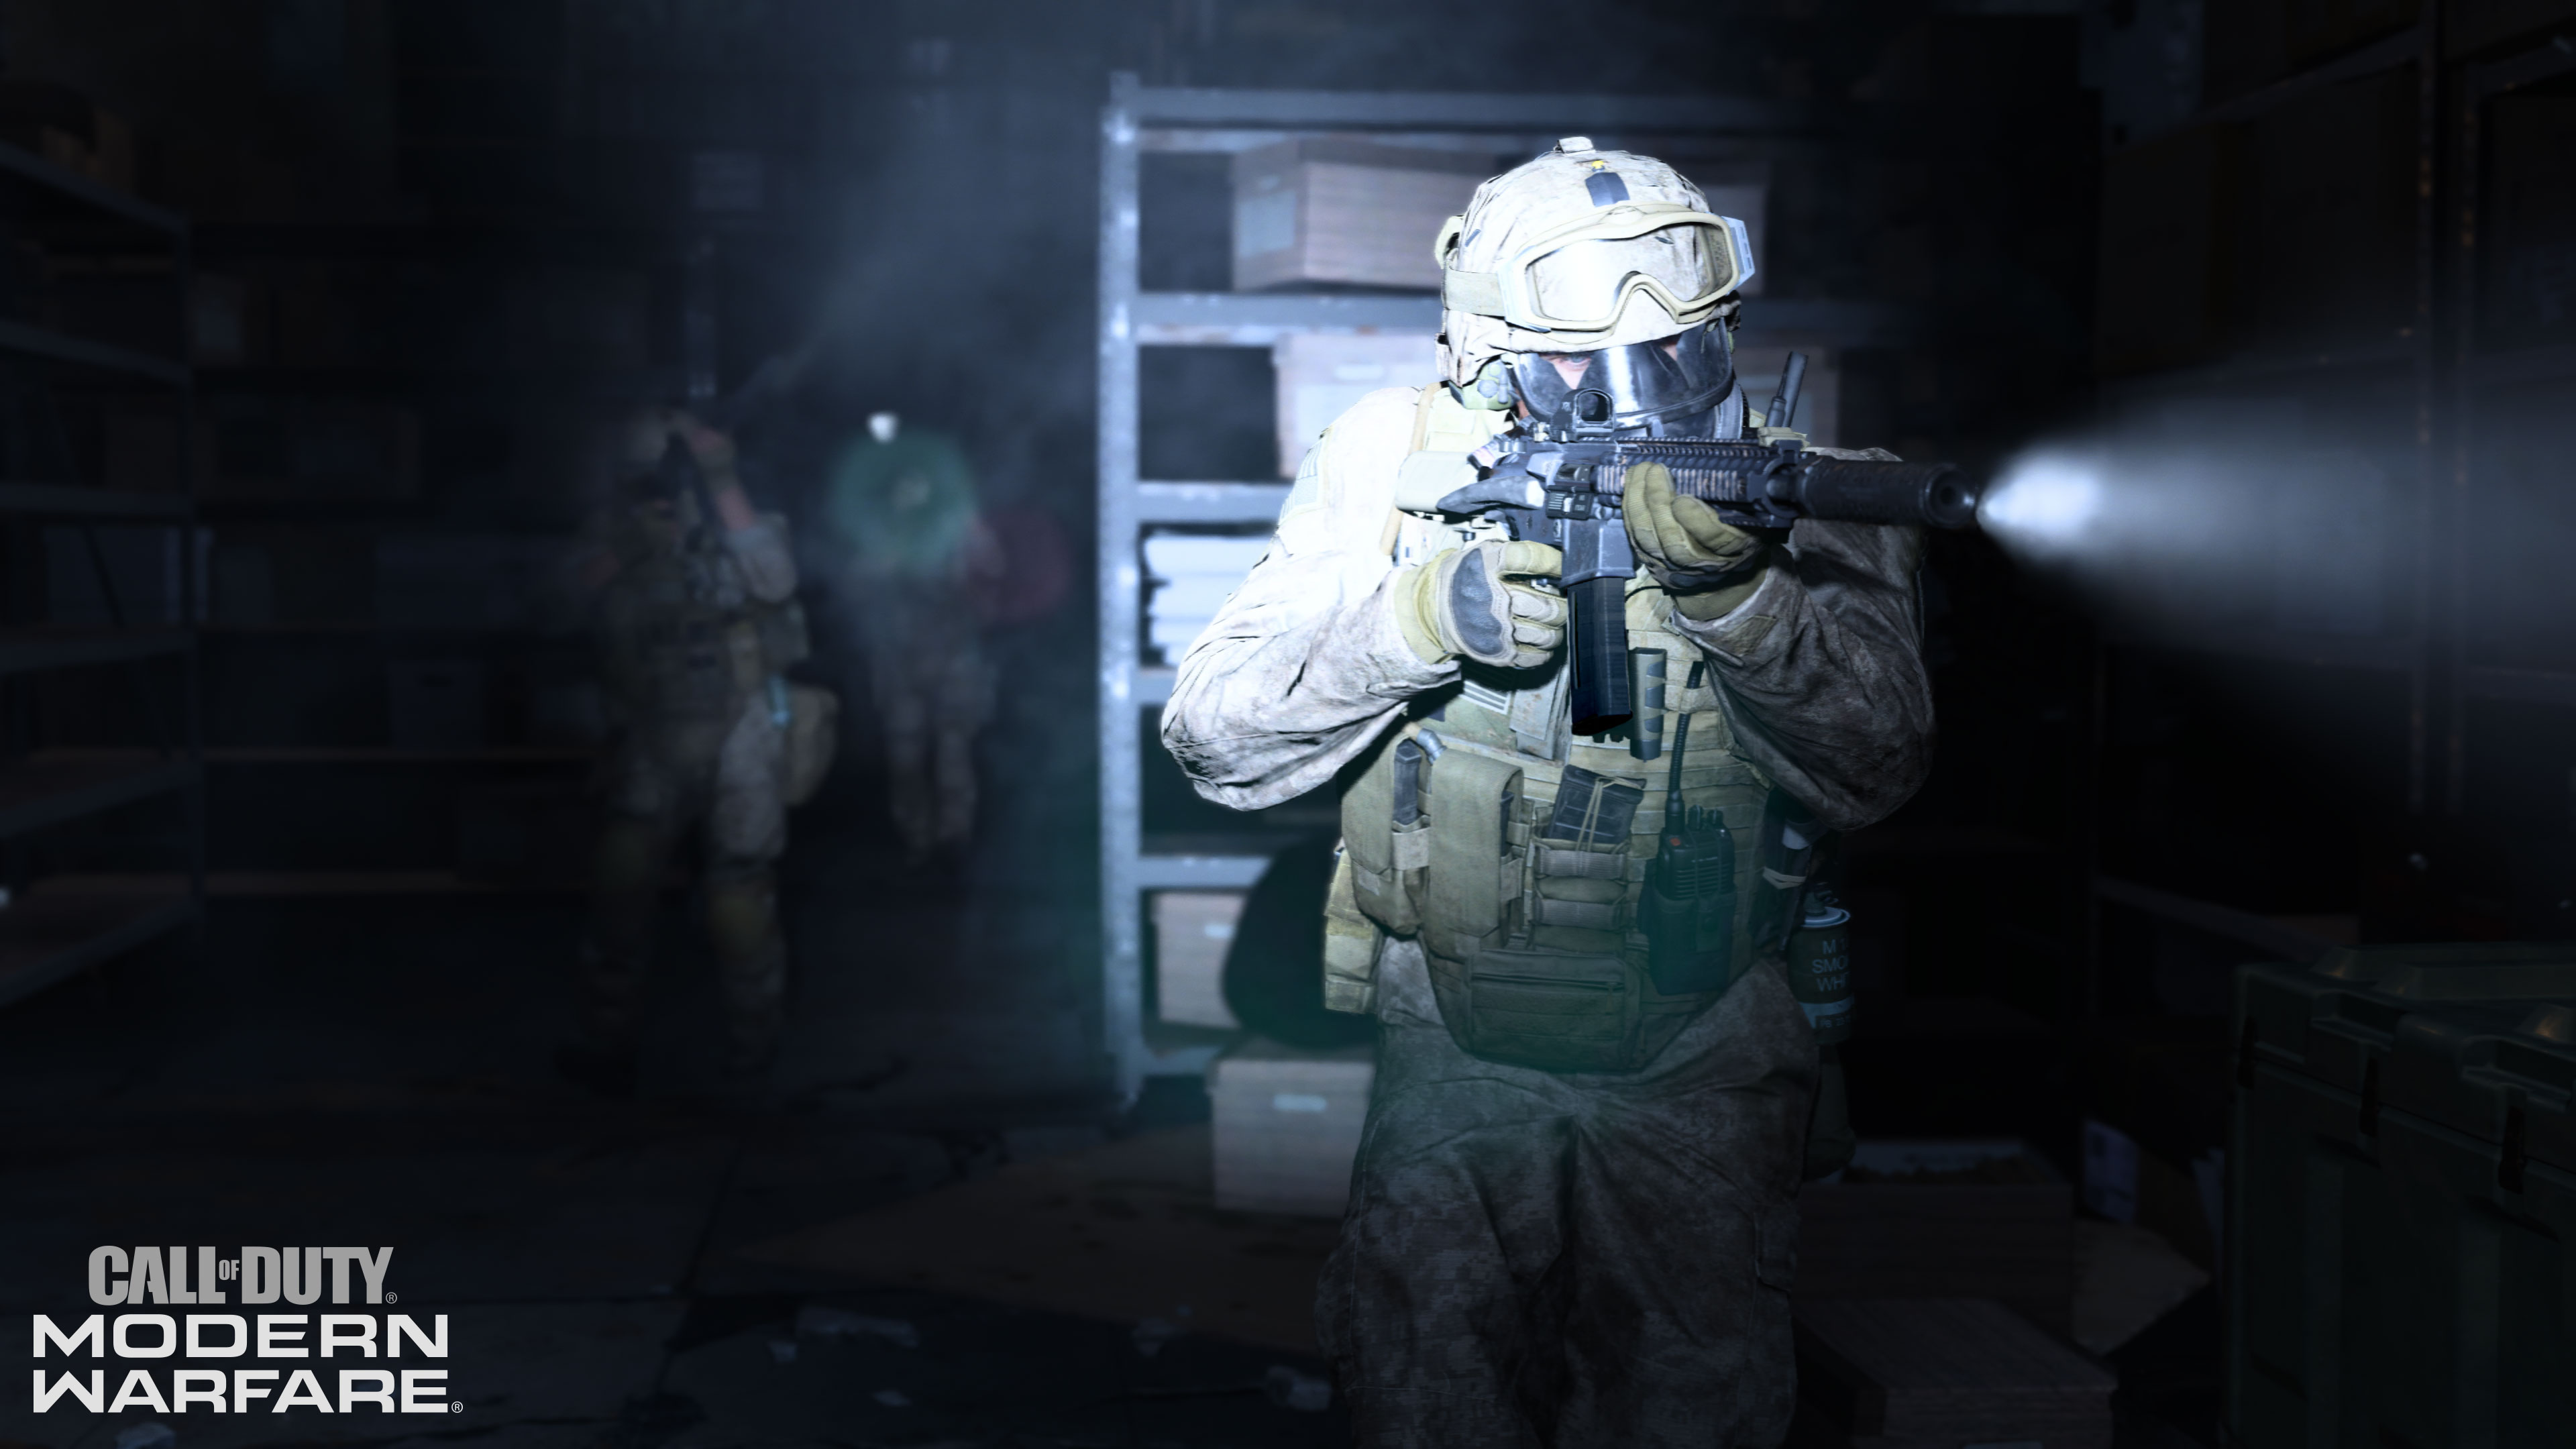 Call of Duty: Modern Warfare is a thrill ride that turns you into a monster